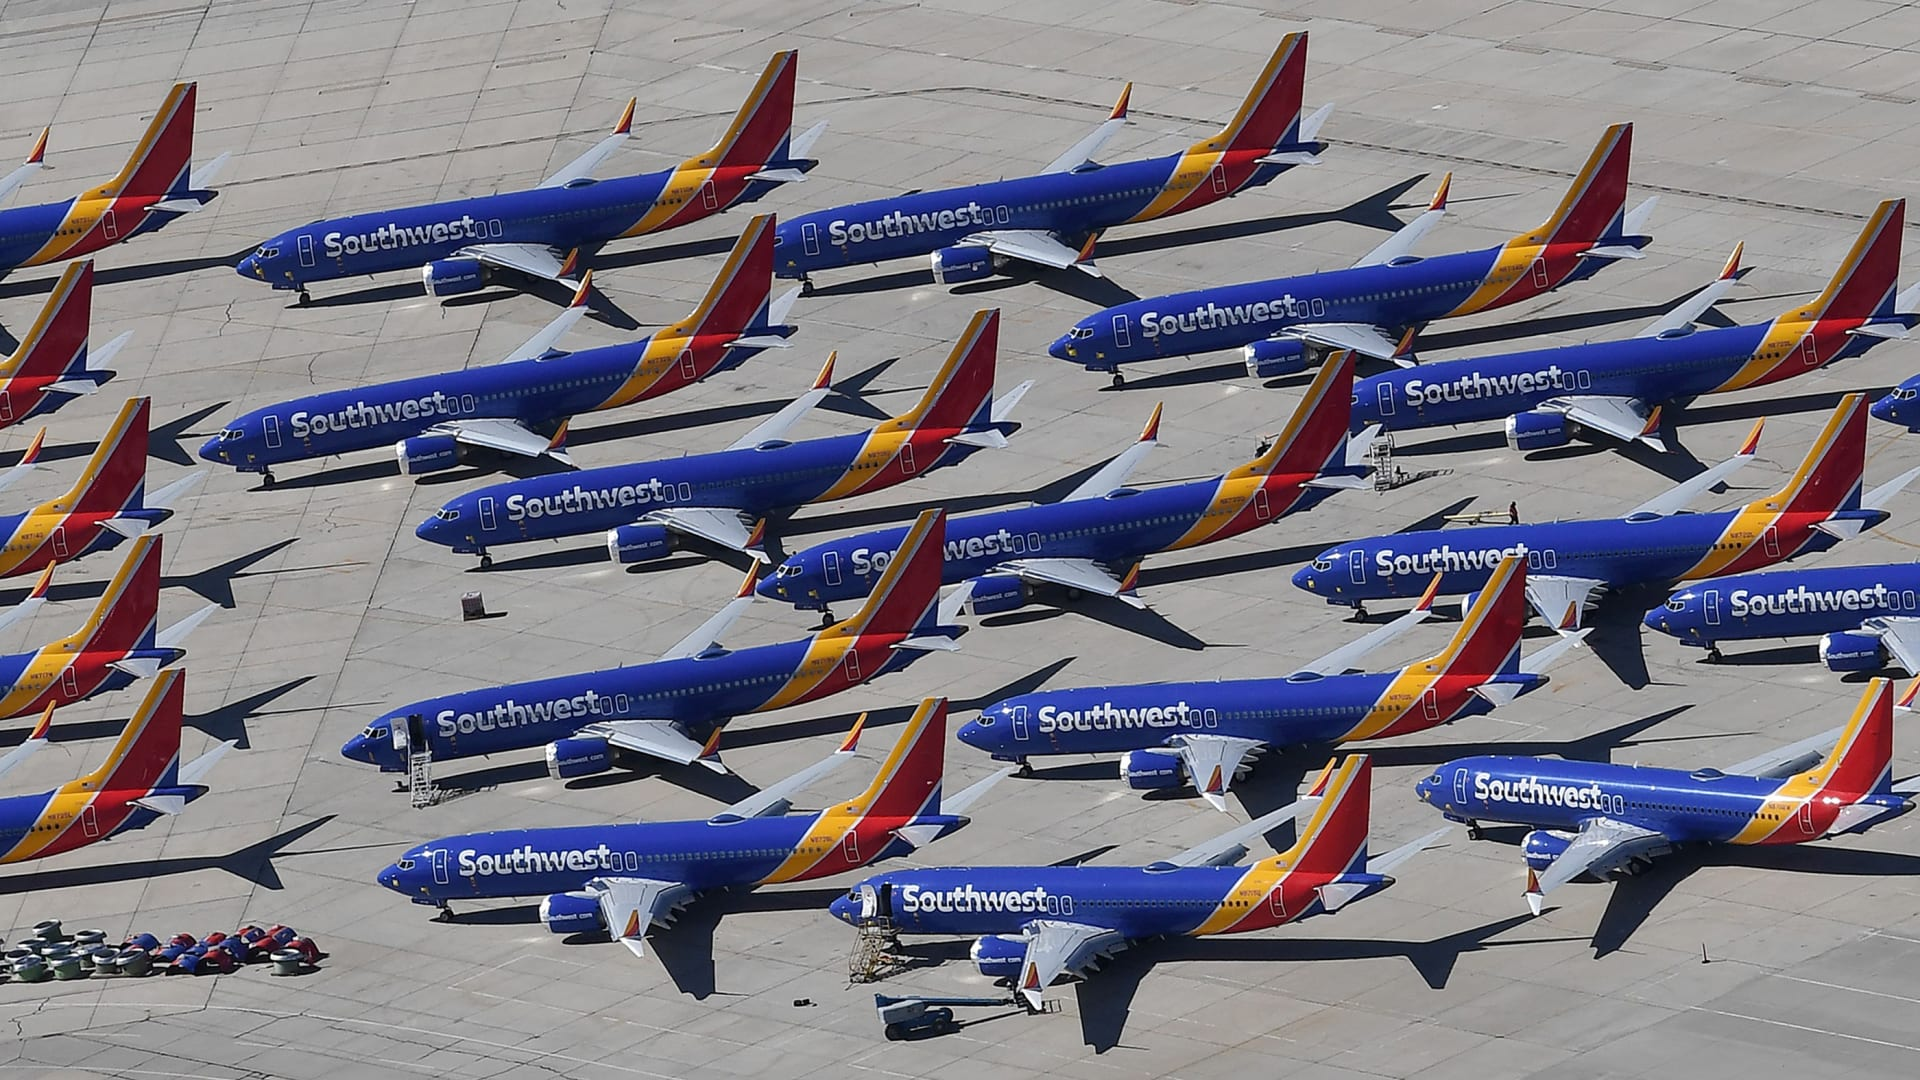 Southwest Airlines Just Made a Tough Decision. Is It Risky or Smart?